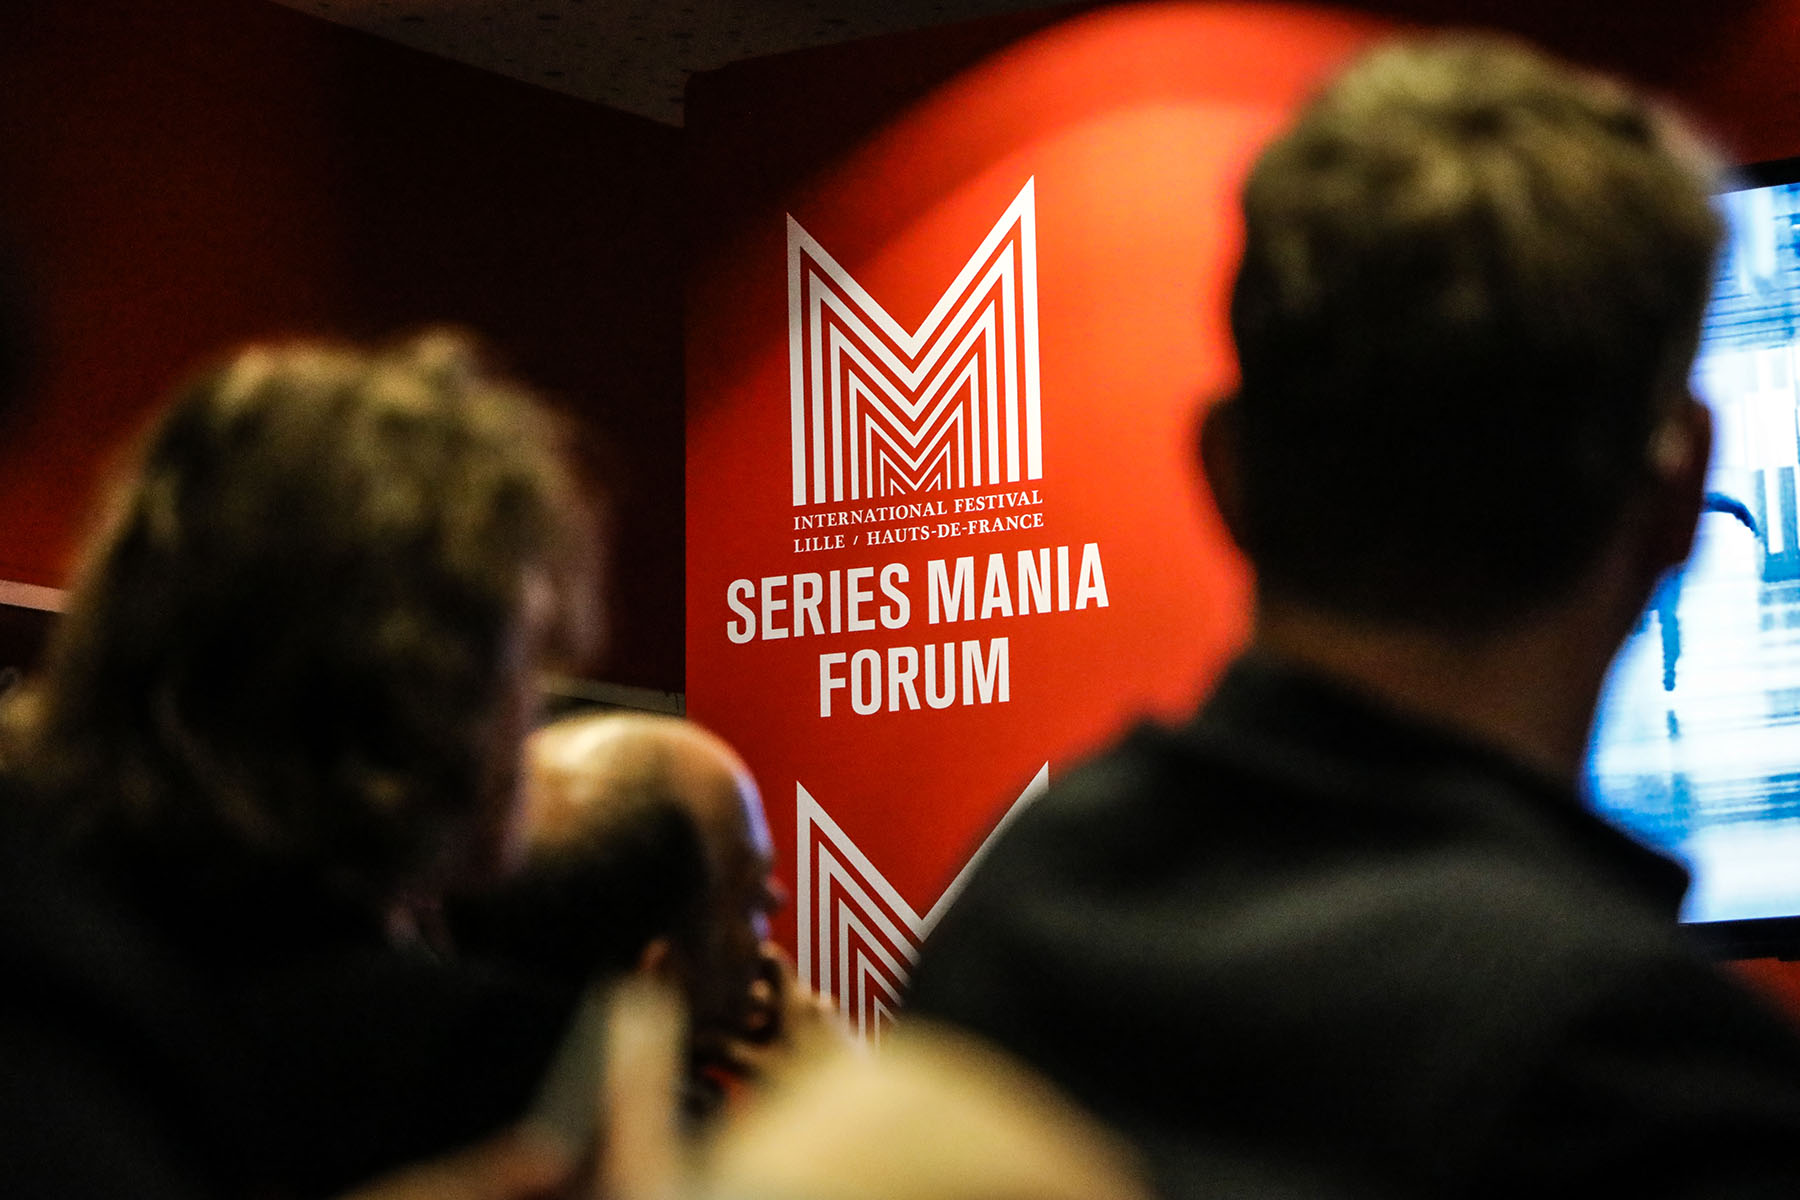 logo series mania forum